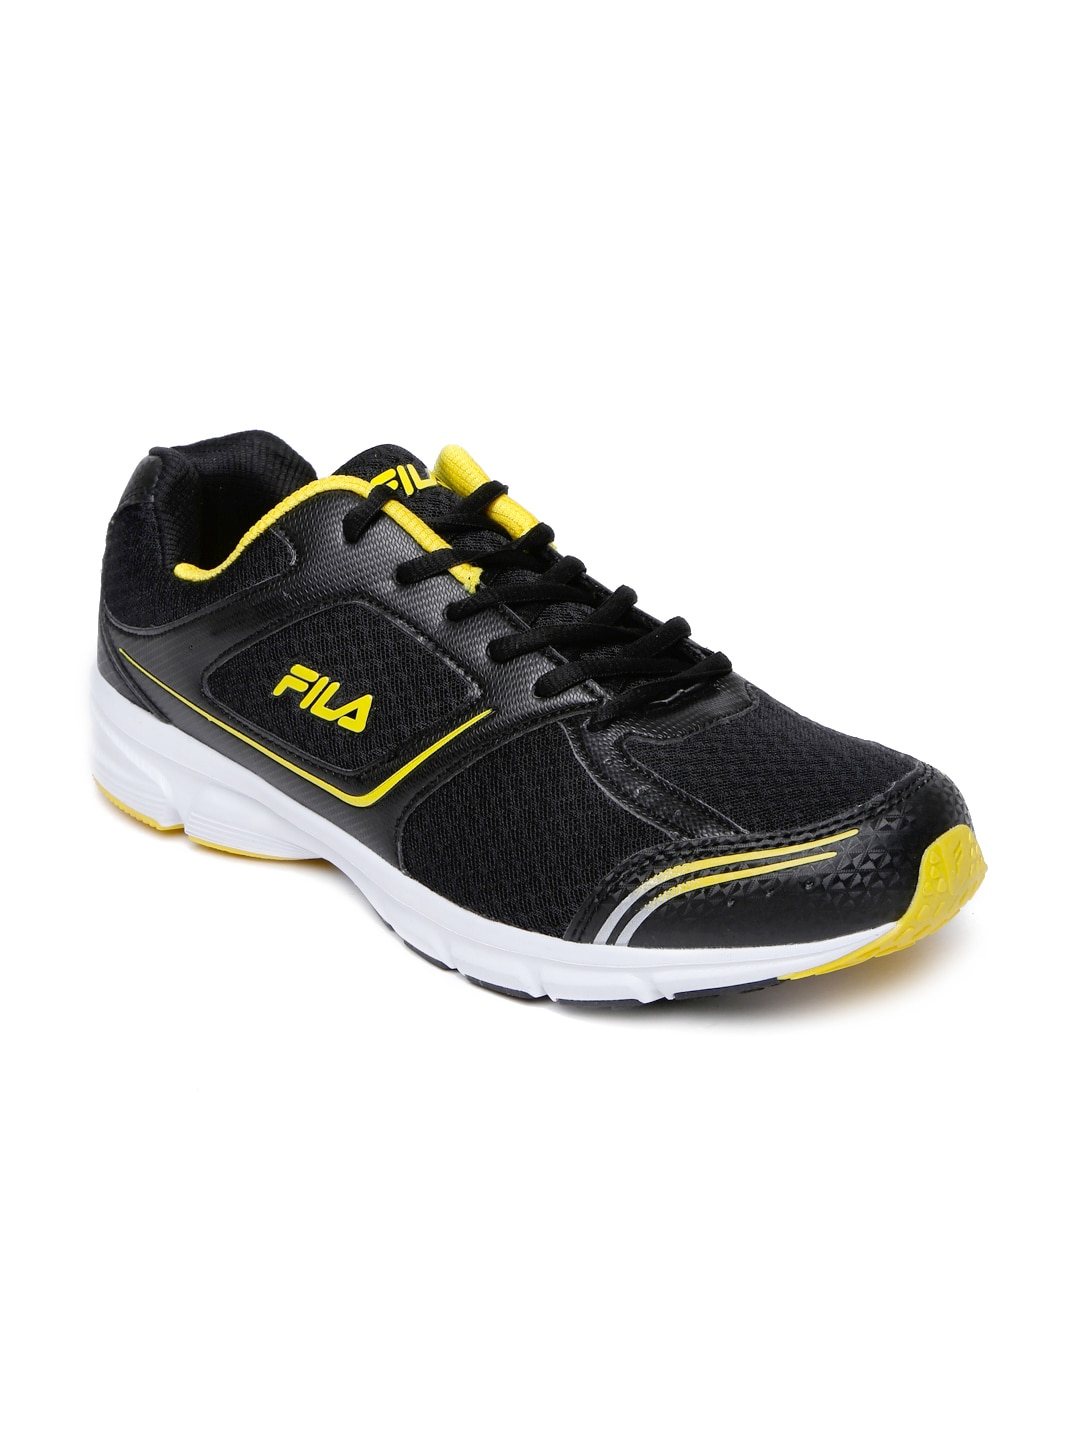 India In At Best Running Fila ShoesBuy Online PkXiuZOwT